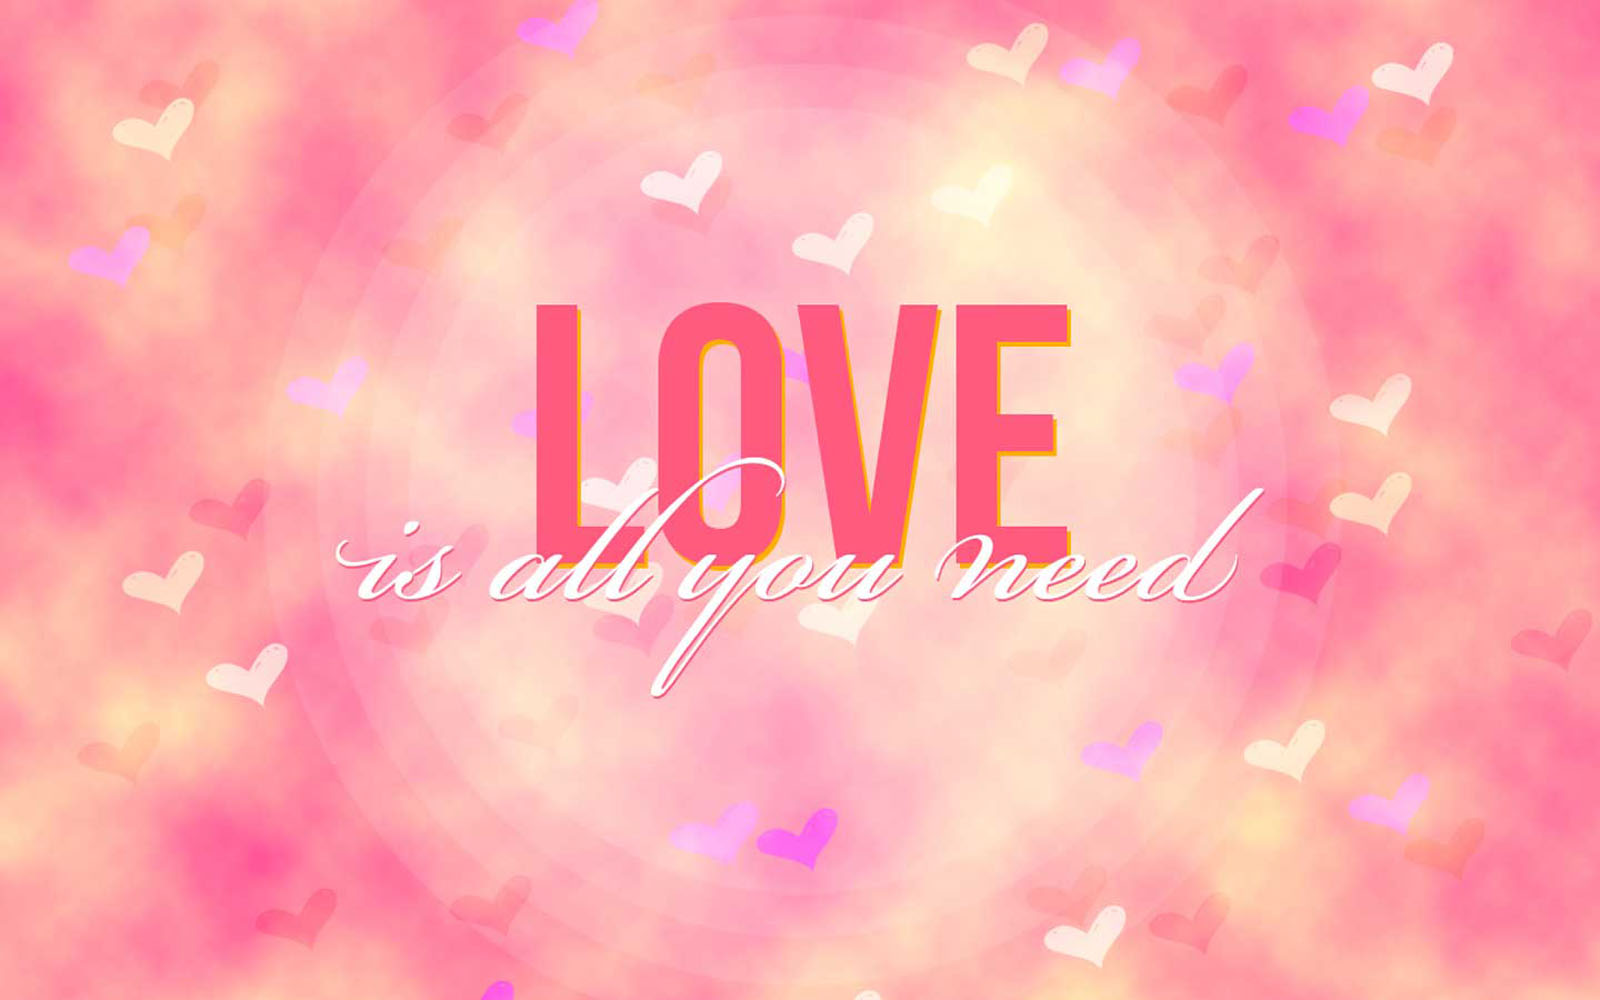 Love Wallpaper Latest : wallpapers: All You Need Is Love Wallpapers